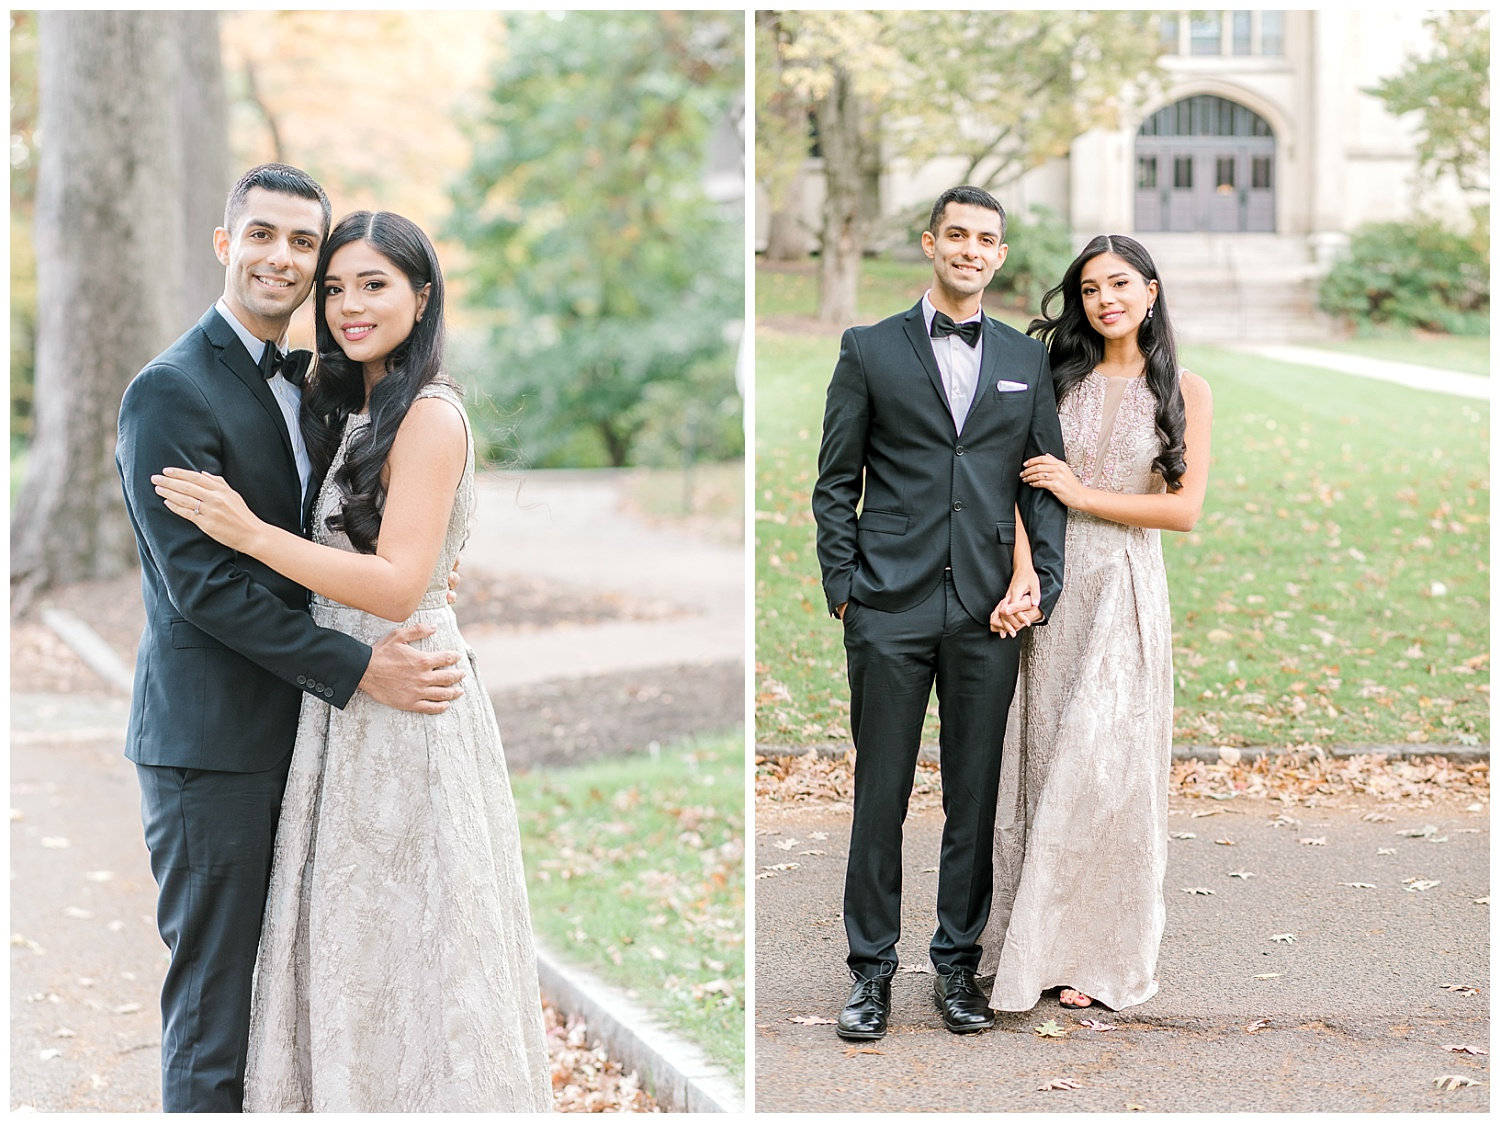 wellesley_fall_engagement_photos_erica_pezente_photography (4).jpg